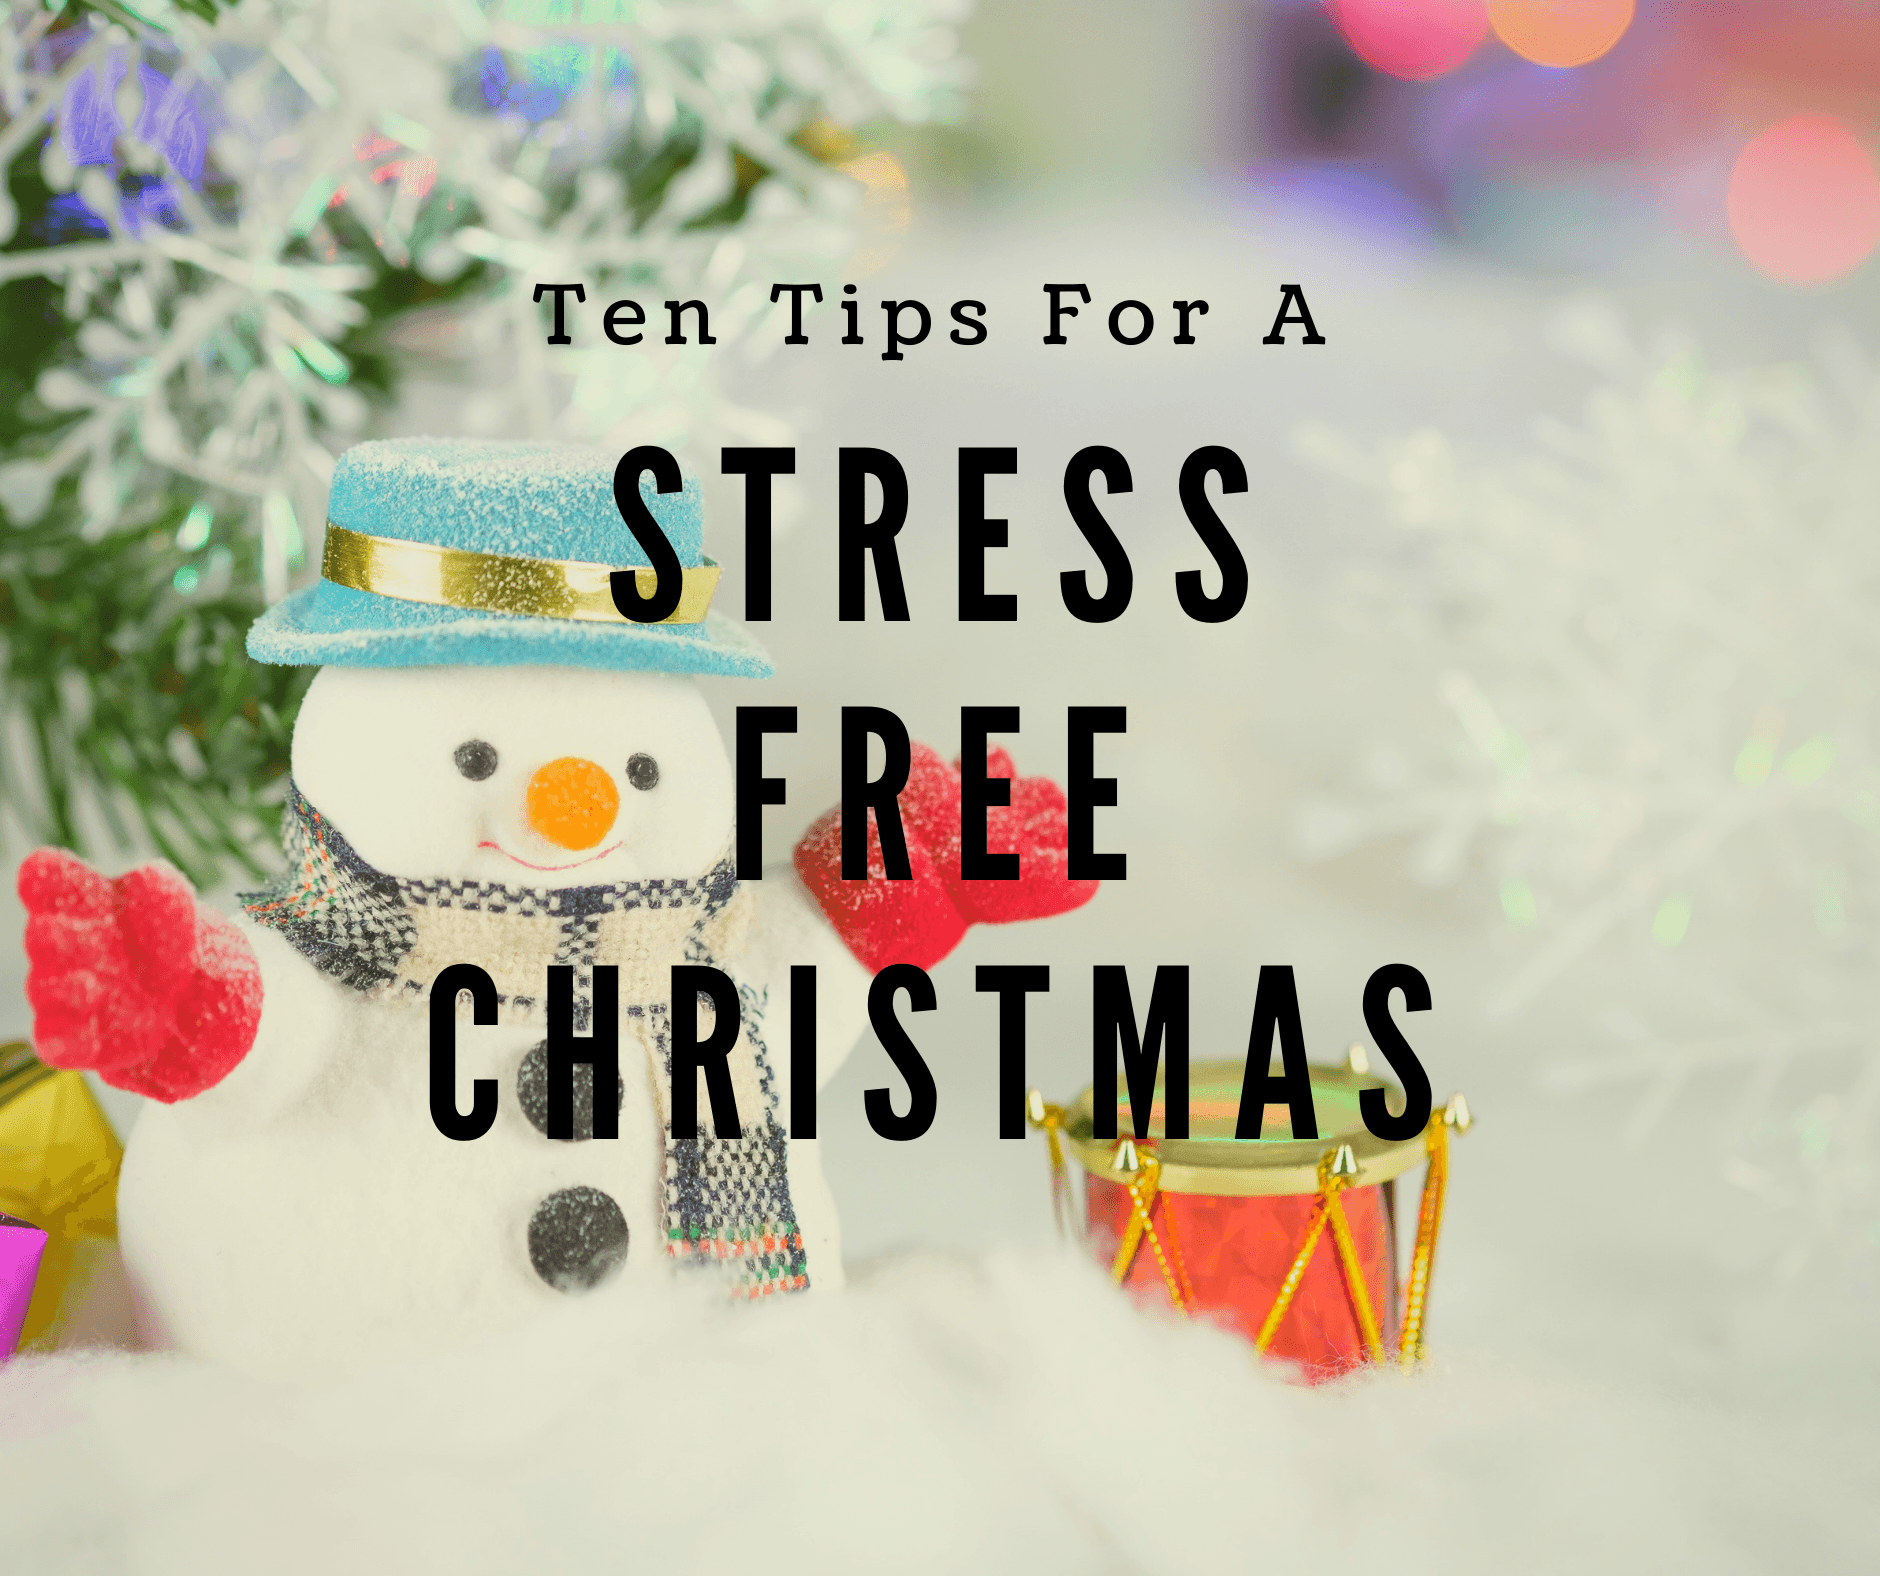 Ten Tips For a Stress Free Christmas | Looking for ways to make your #christmas #stress #free here are ten #tips to help you